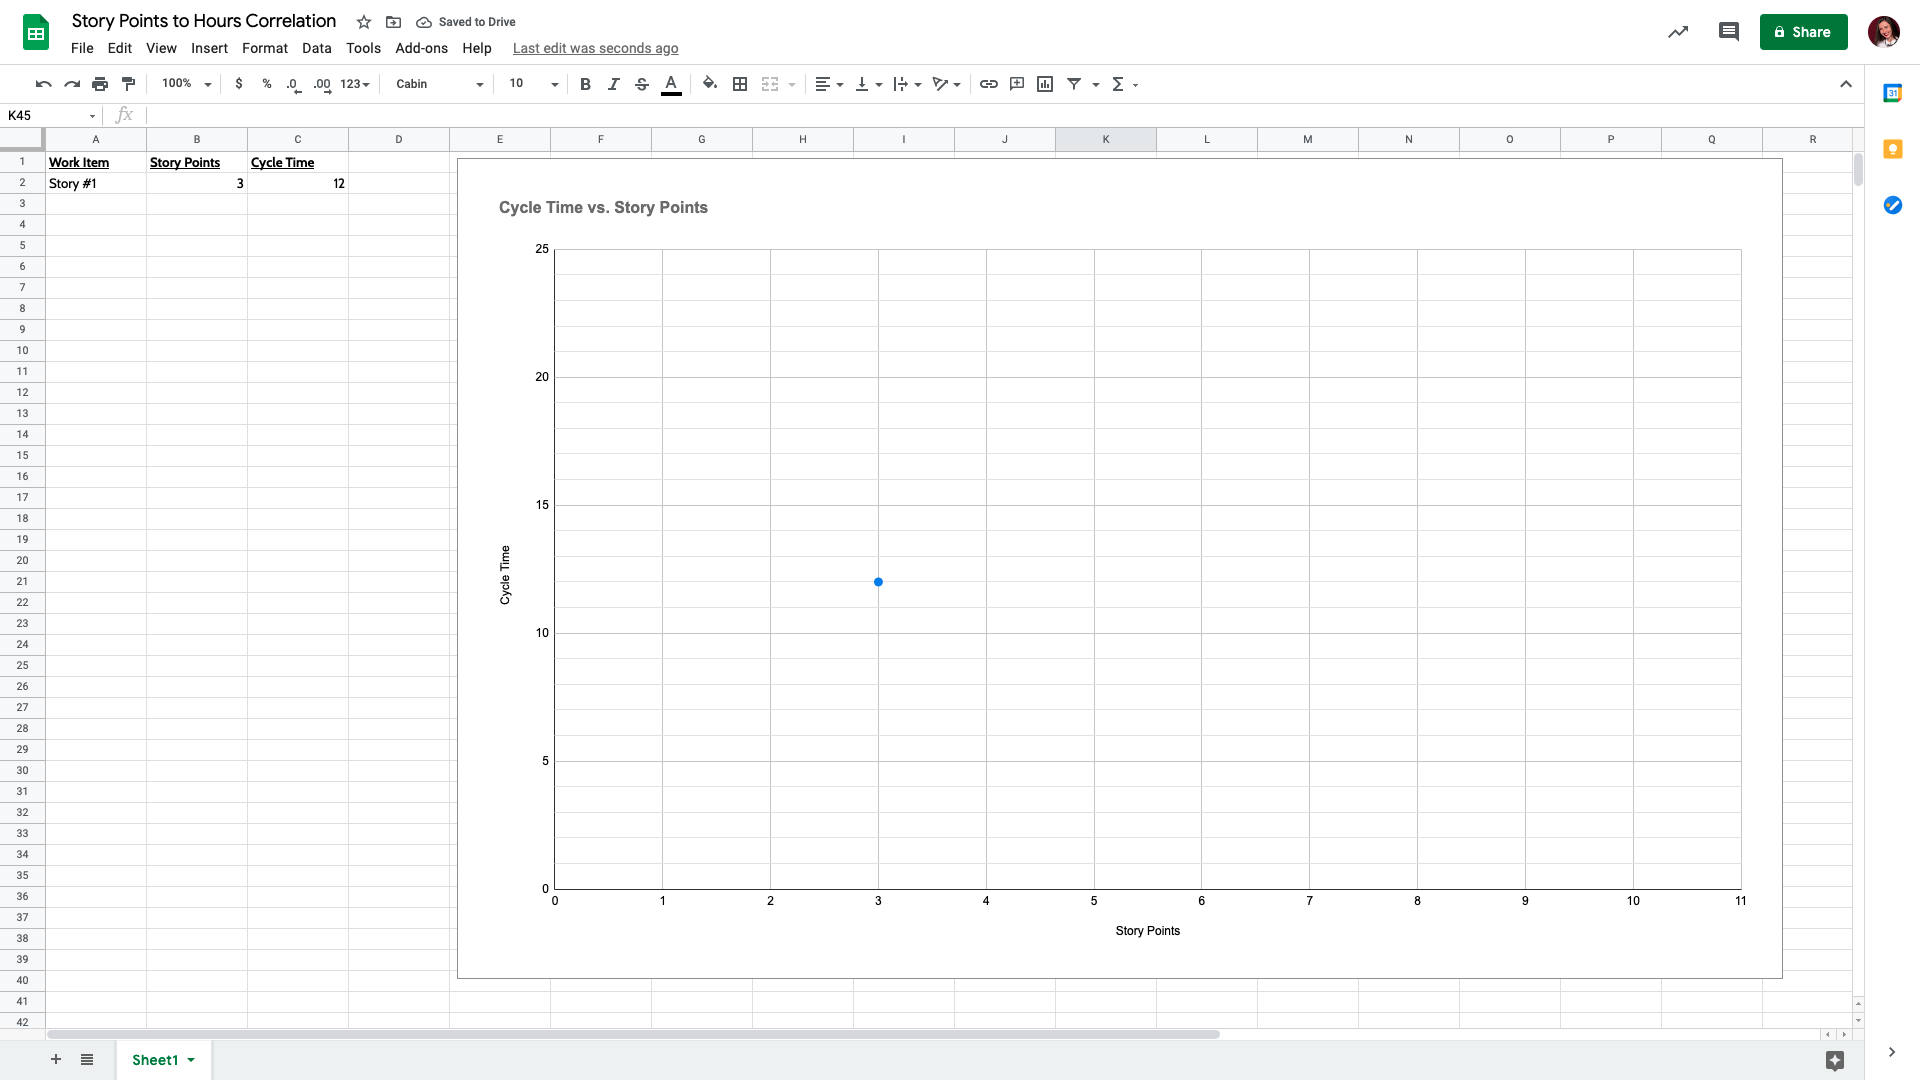 Story points to hours - one data point